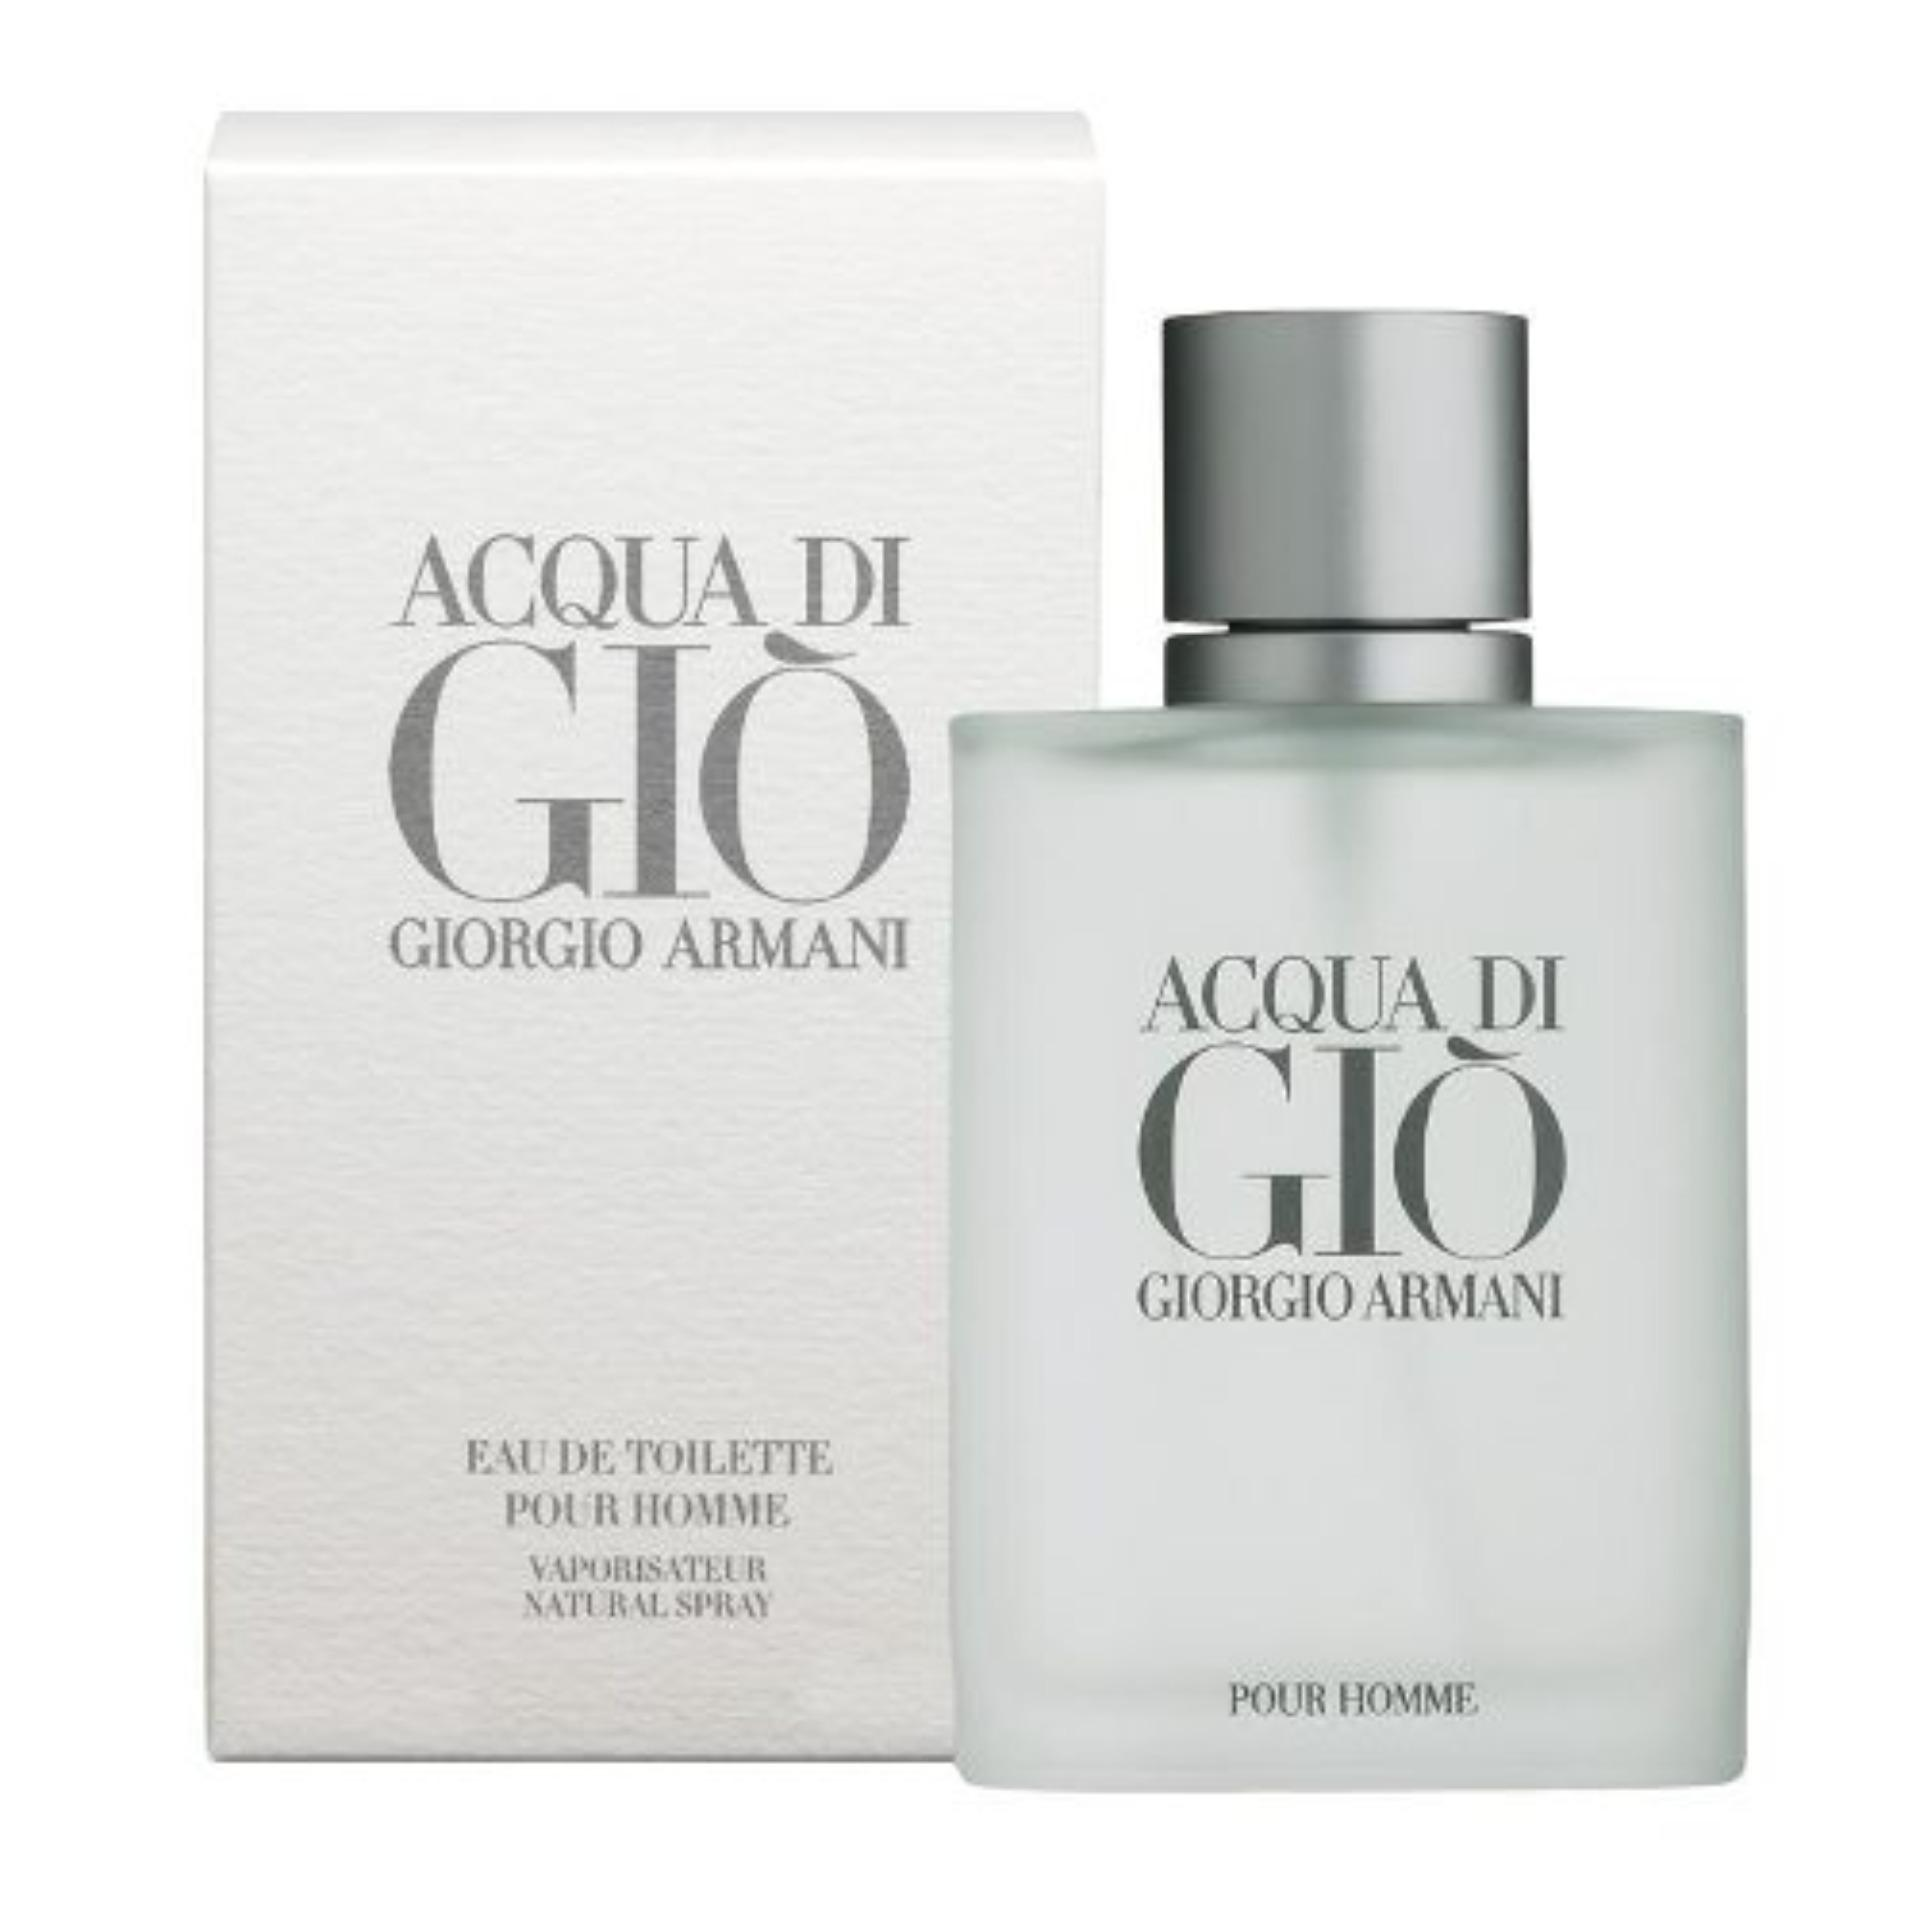 Giorgio Armani Fragrances Philippines Mens And Diamonds For Women 100ml Acqua Di Gio By Men Eau De Toilette